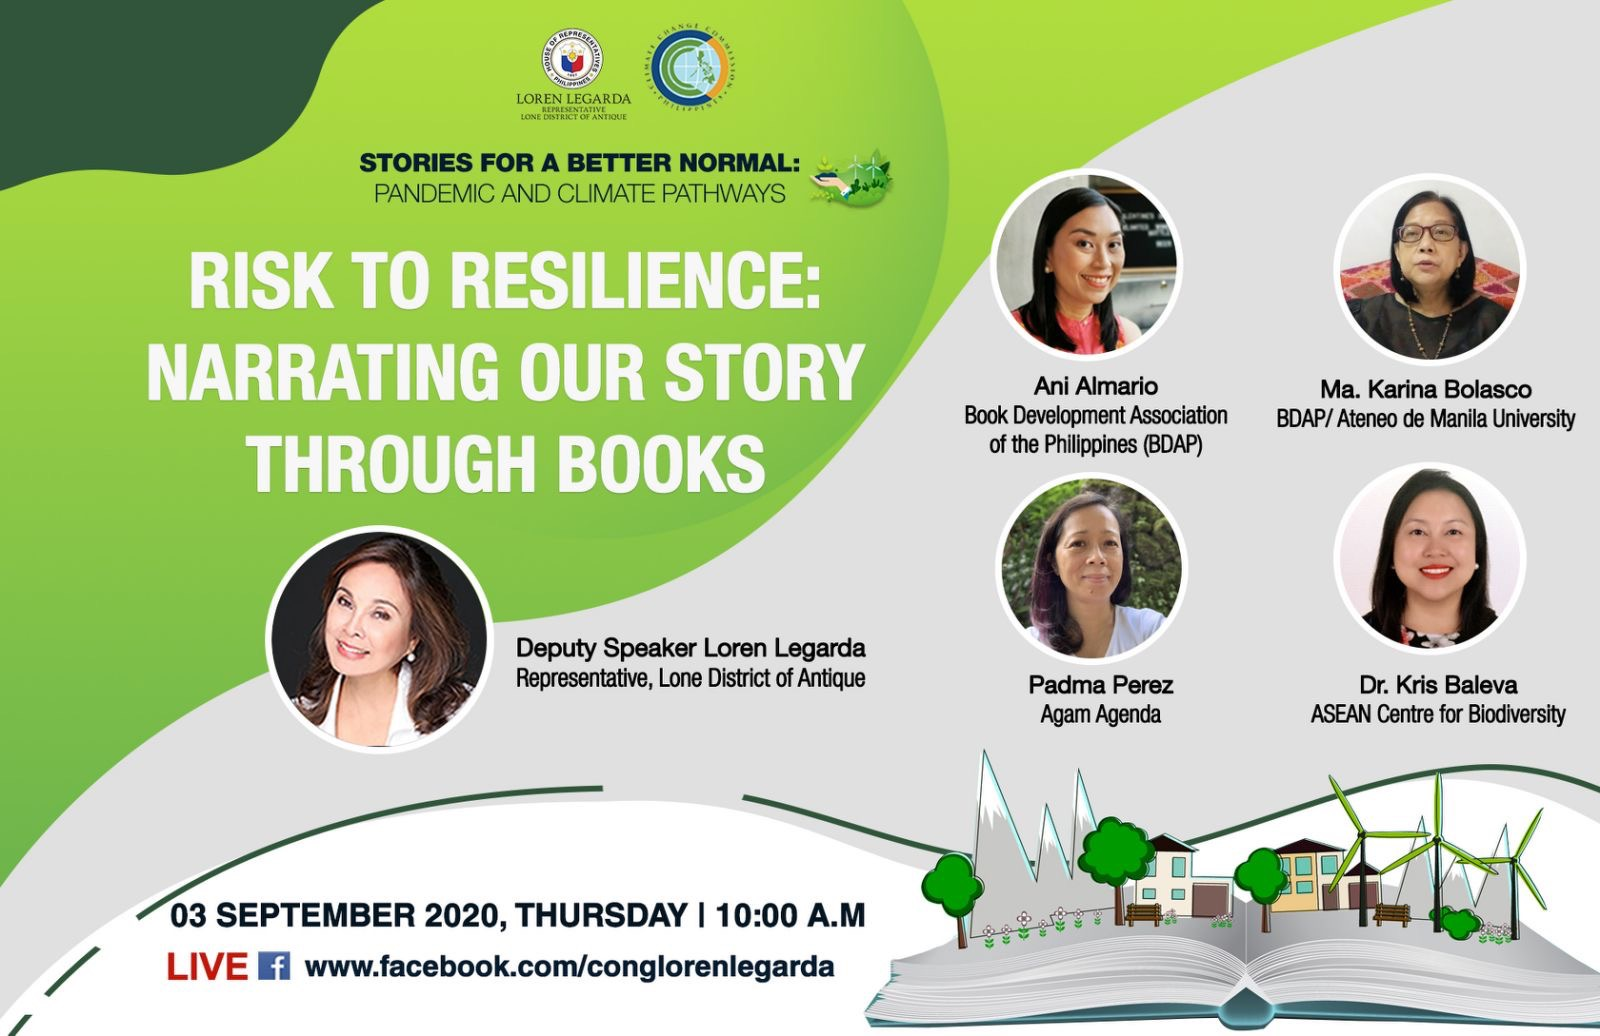 """Risk to Resilience: Narrating Our Story through Books in 16th Episode of """"Stories for a Better Normal"""" Series"""